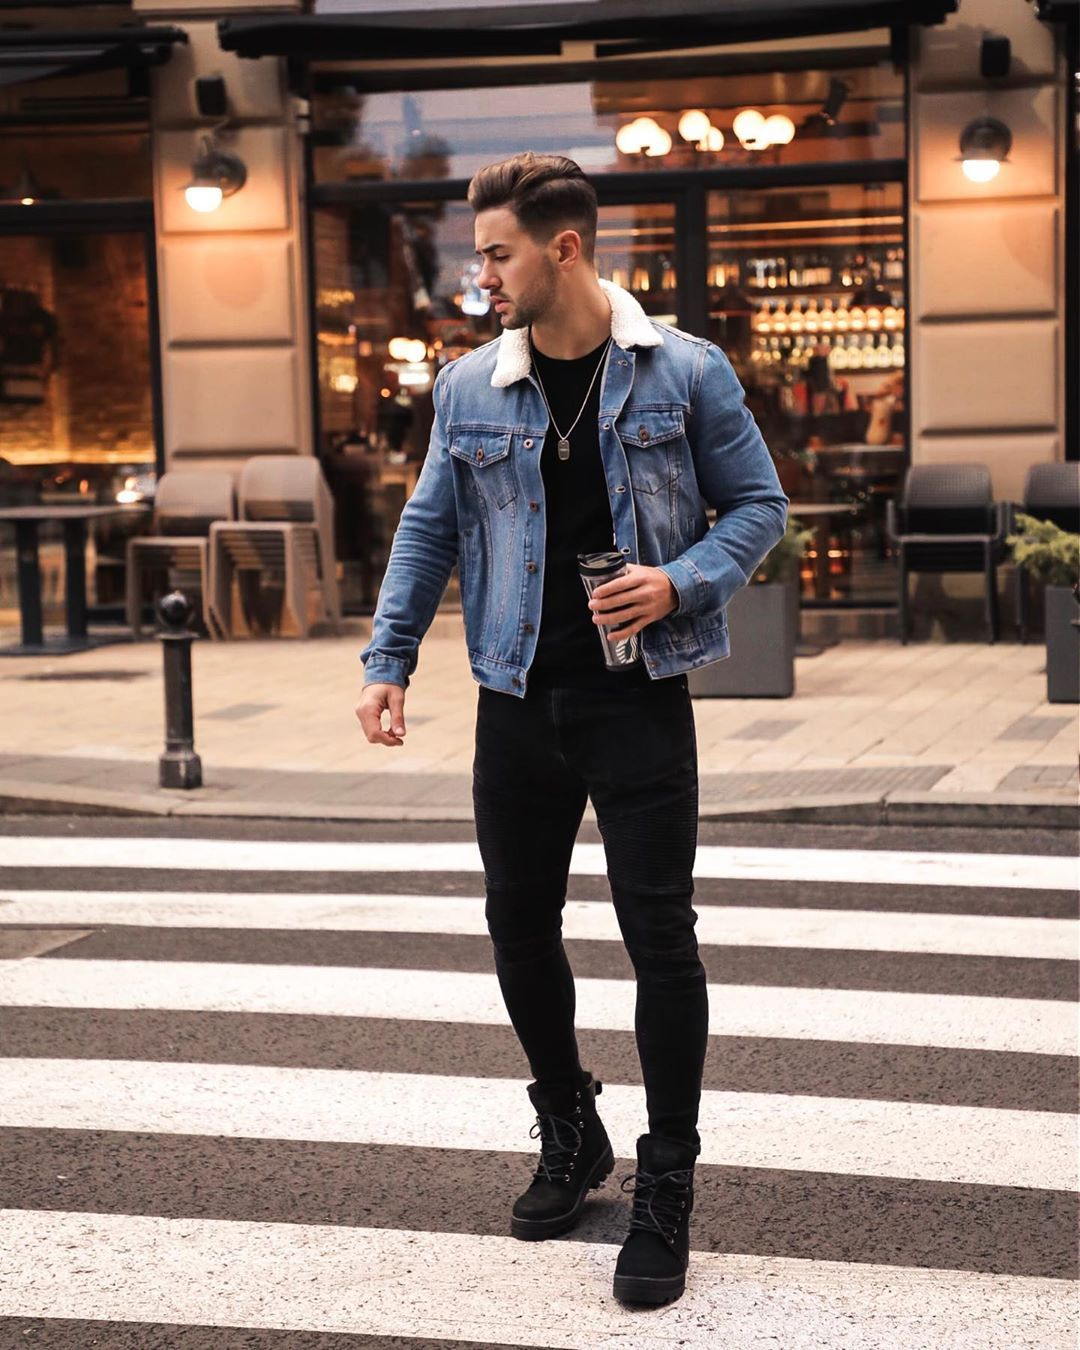 Nemanja Grujic On Instagram Always On The Move Shoes Are Palladium Boots From Officesh Denim Jacket Outfit Jean Jacket Outfits Men Trucker Jacket Outfit [ 1350 x 1080 Pixel ]